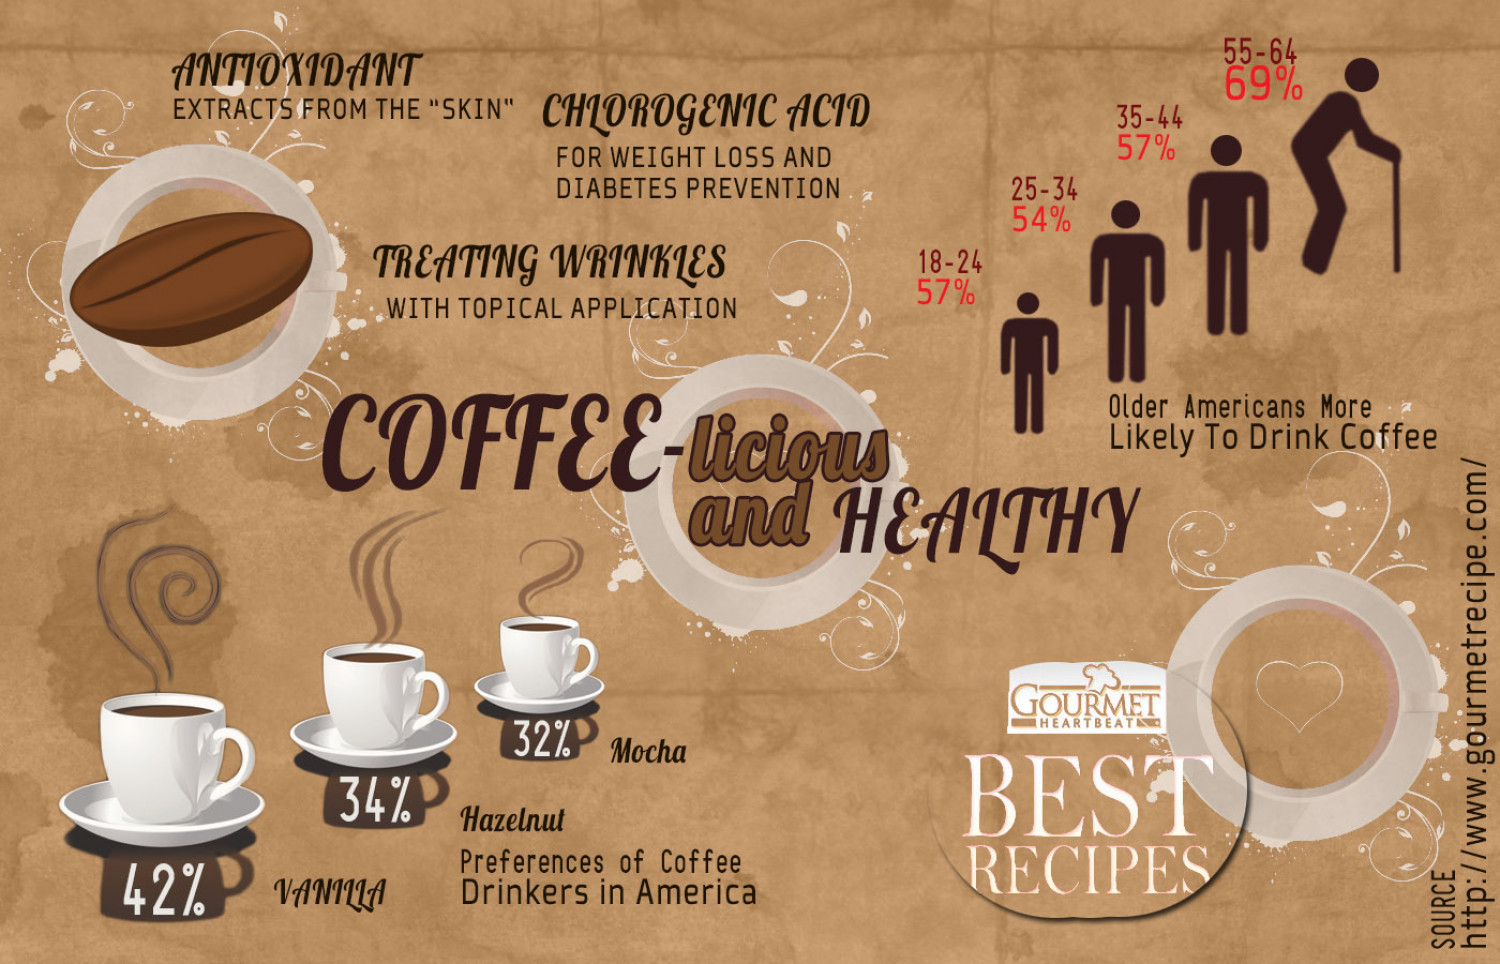 Coffee-licious and Healthy Infographic